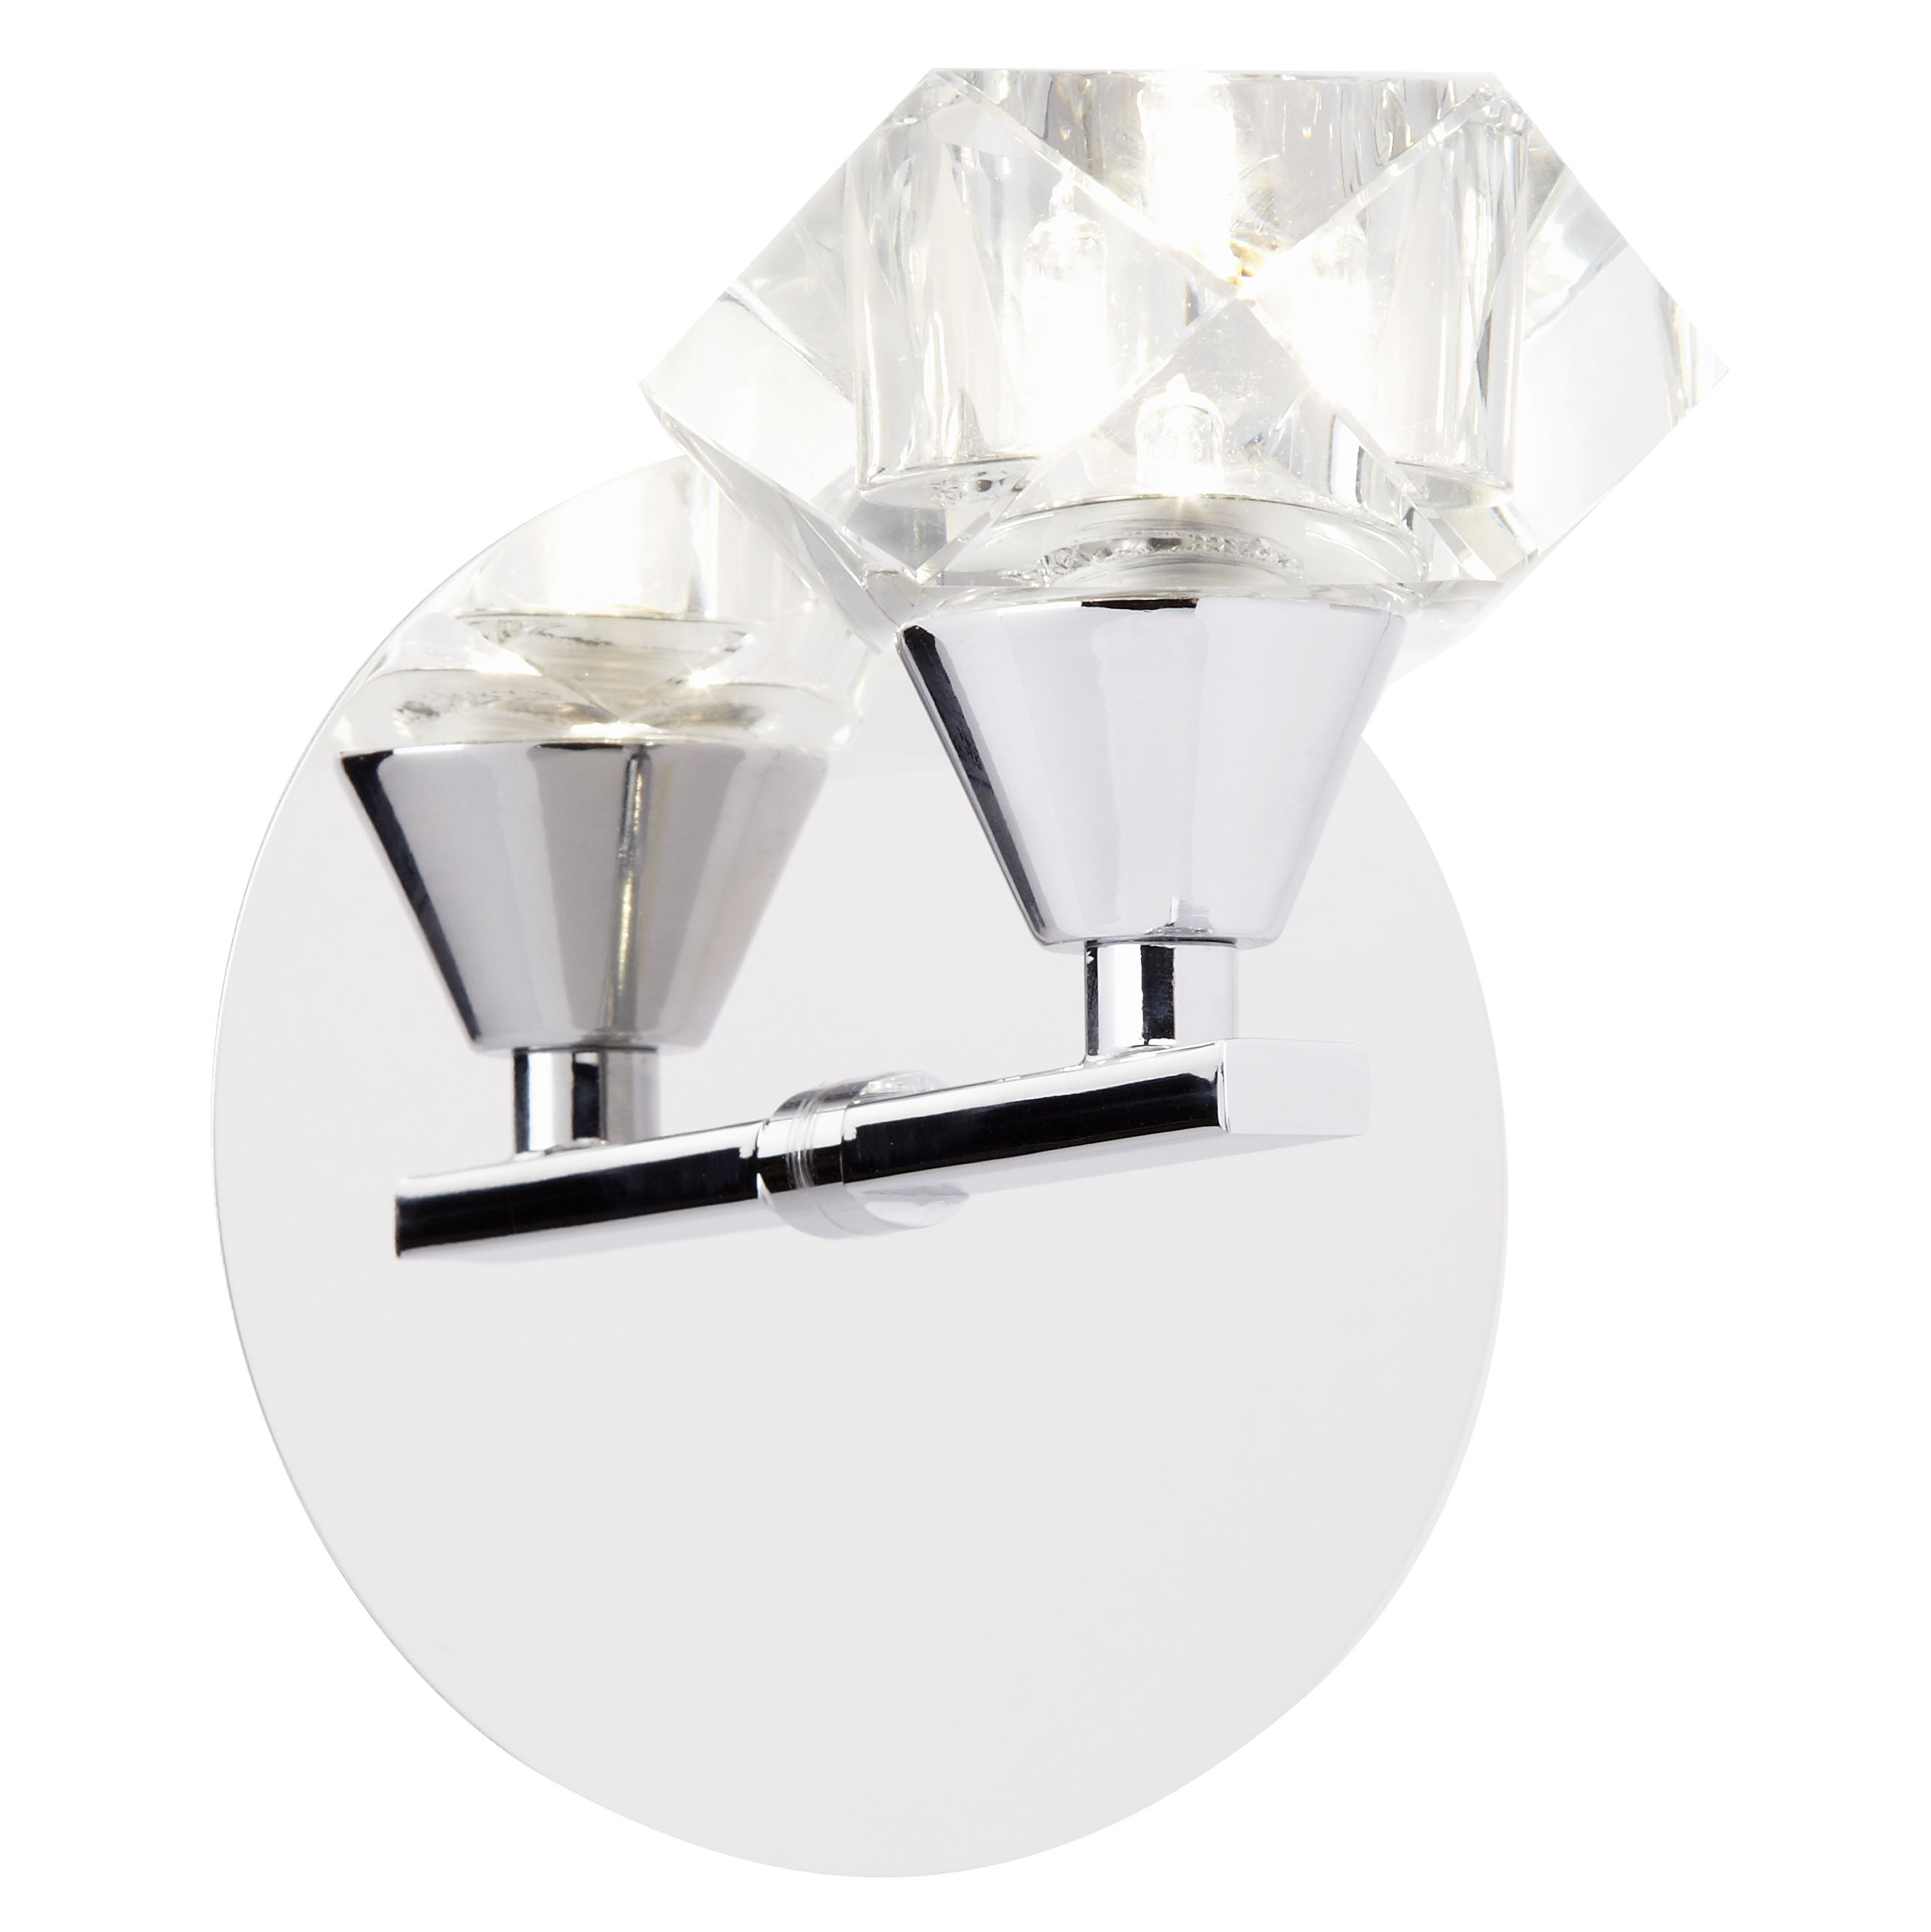 1 Light Wall Bracket In Chrome With Clear Glass Shade ARIETTA-1WBCH